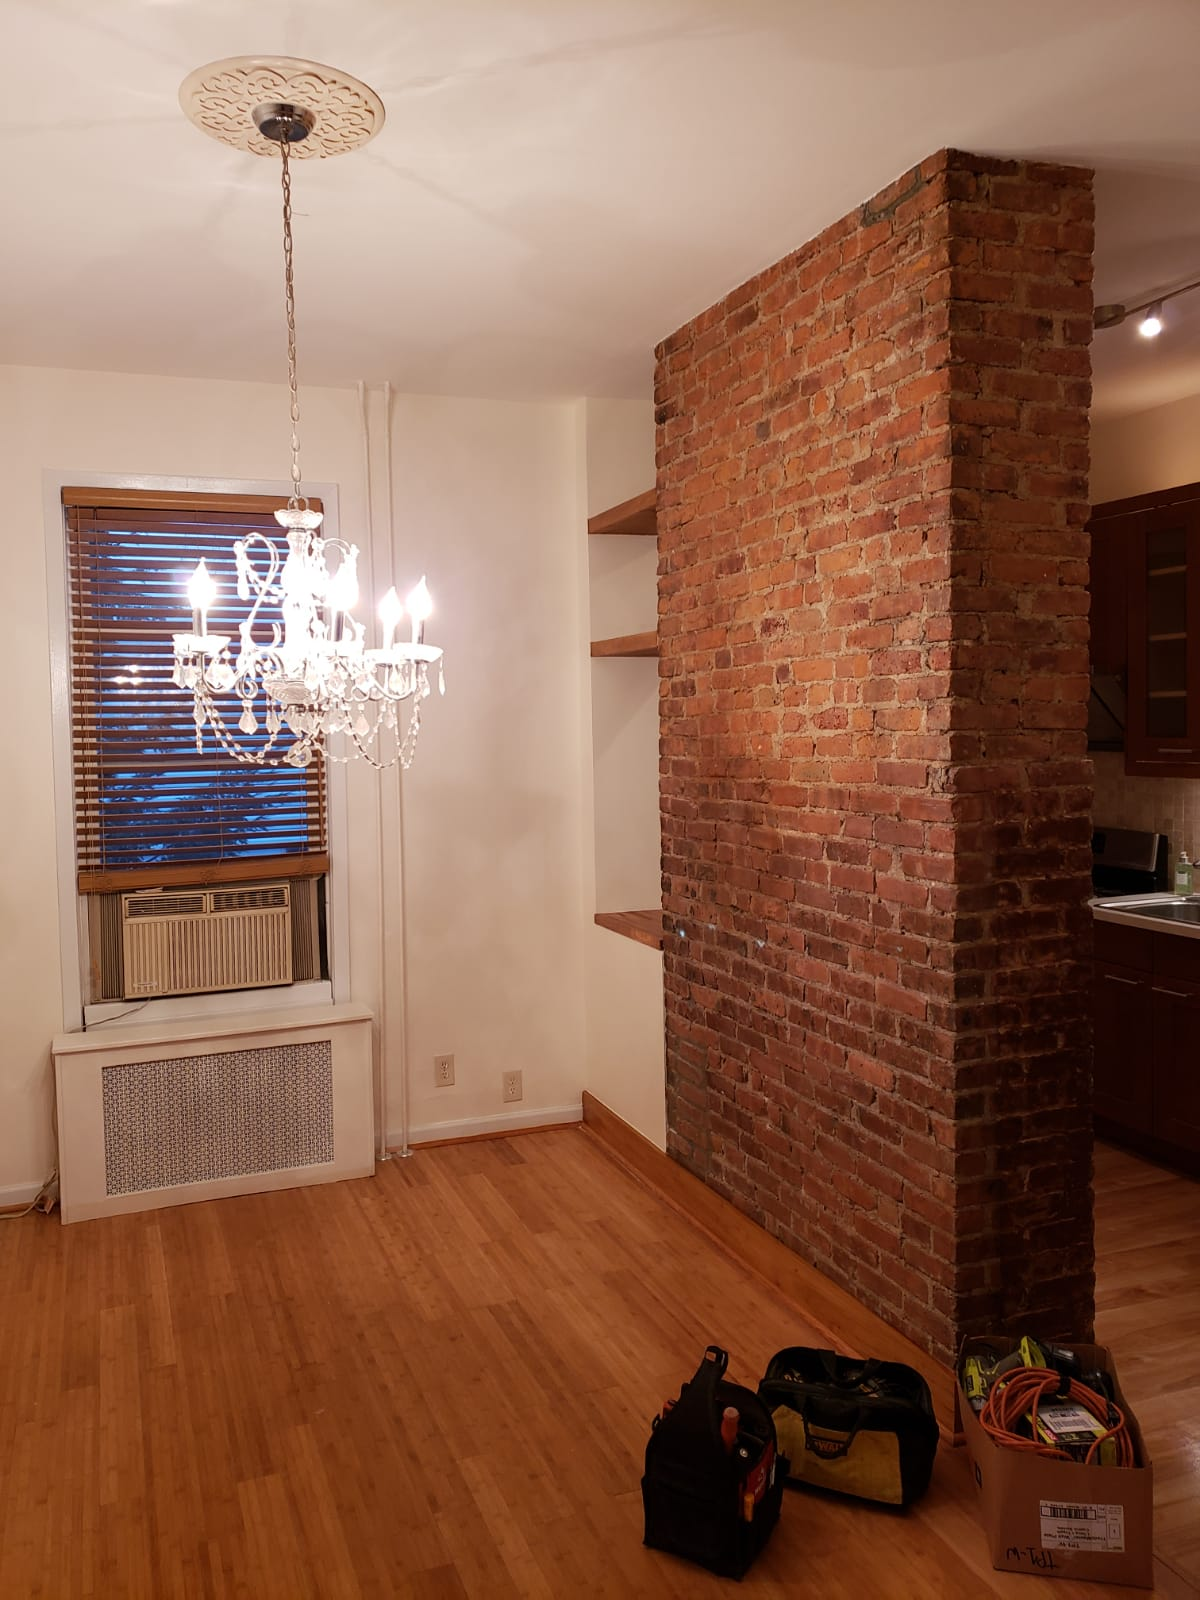 Custom trim work and moulding with newly refinished brick wall